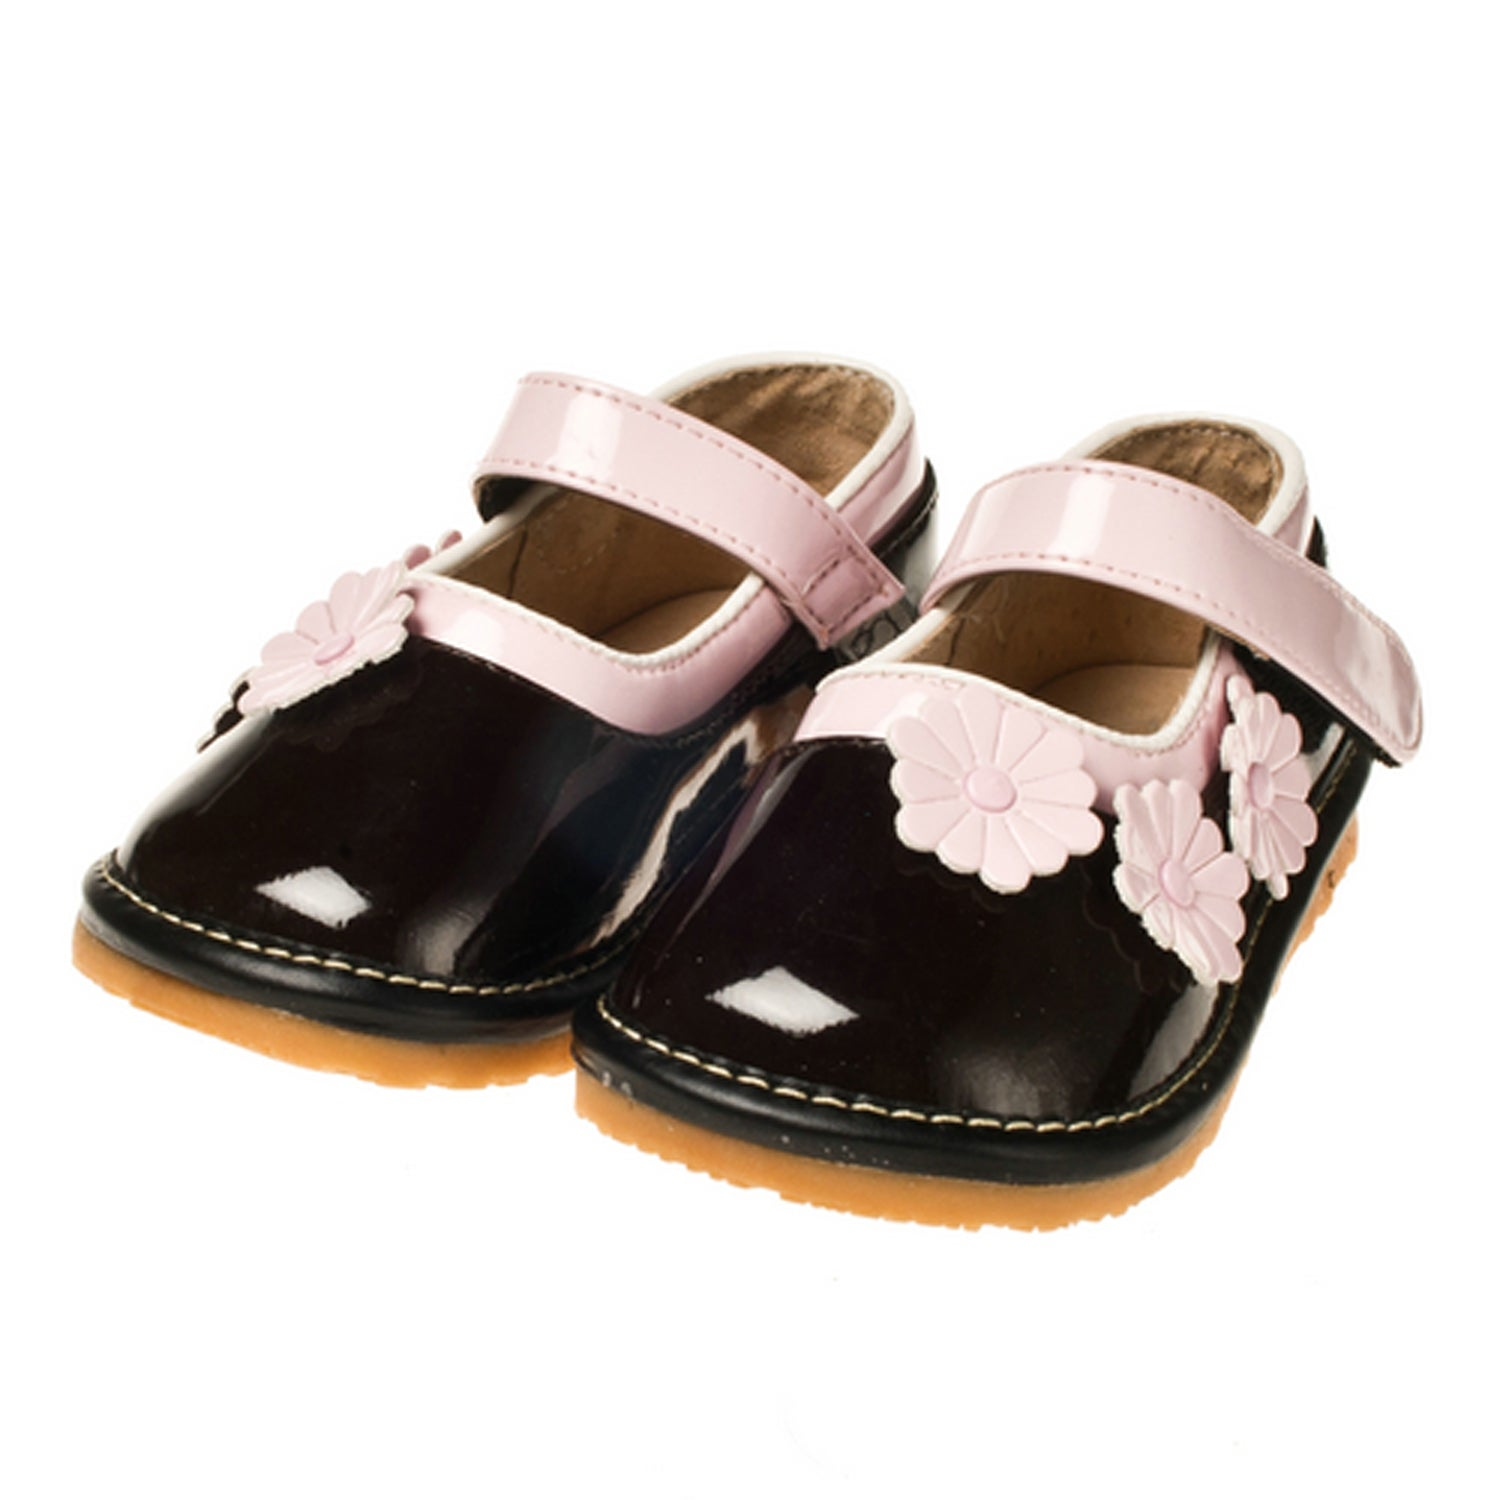 Little Blue Lamb Toddler SQ Series Brown Patent Leather Squeaky Shoes